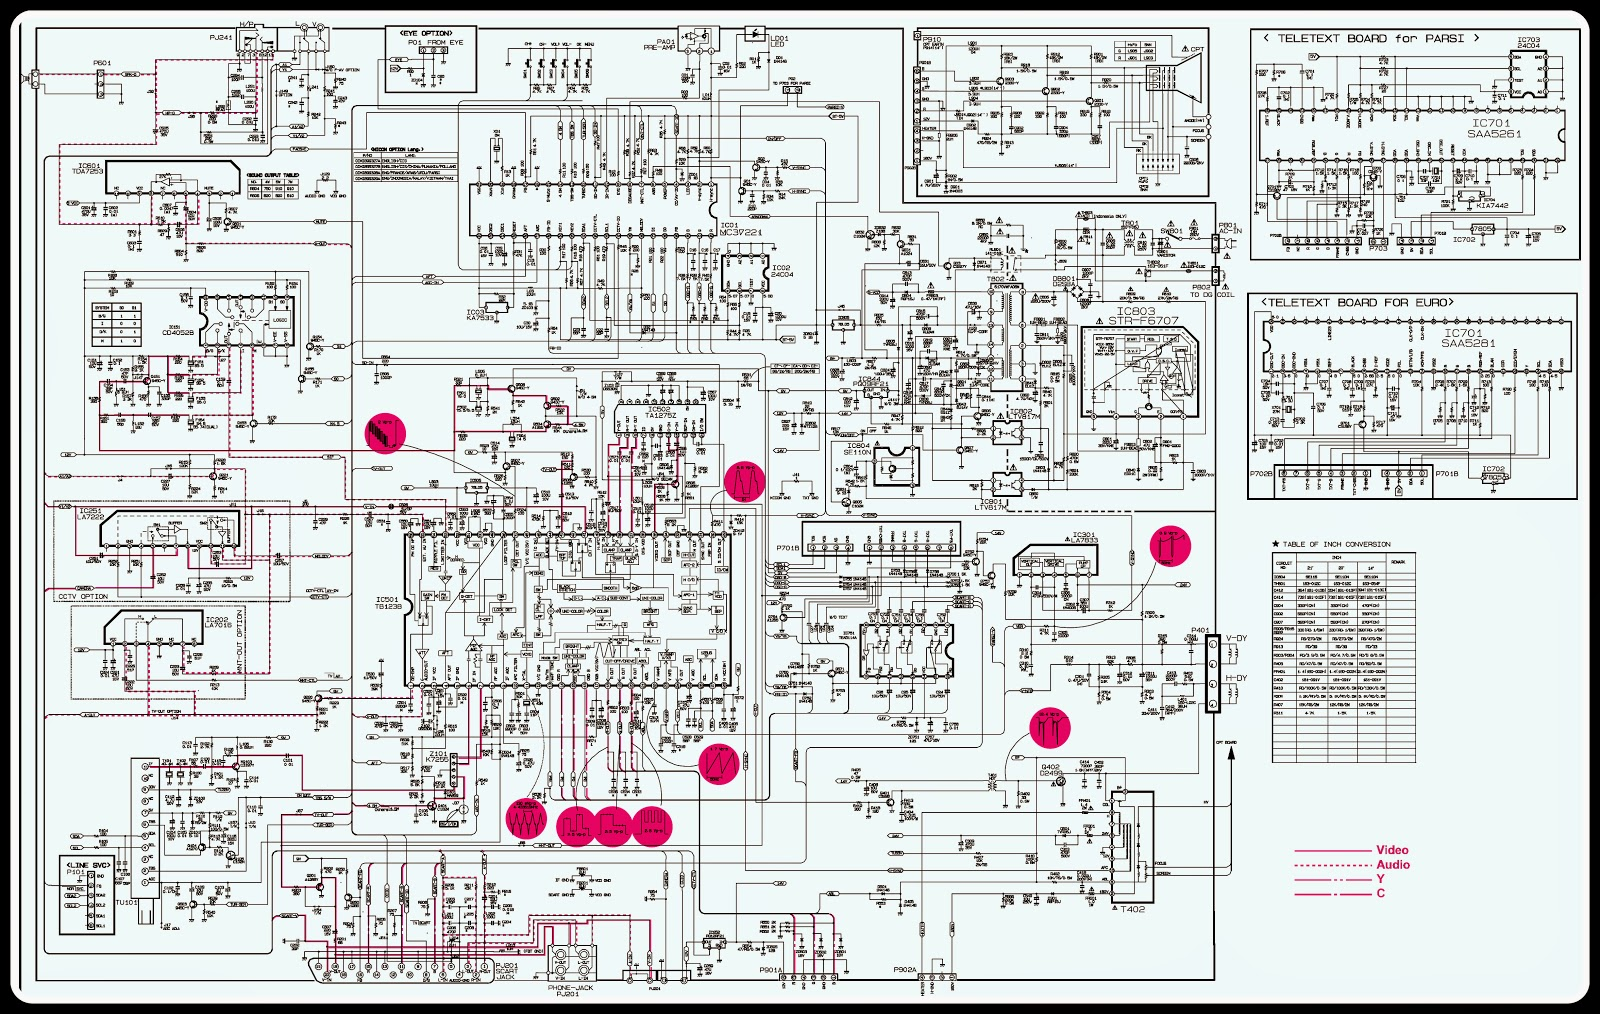 medium resolution of tv schematic diagrams free download wiring diagram post lg tv schematic diagrams wiring diagram post tv